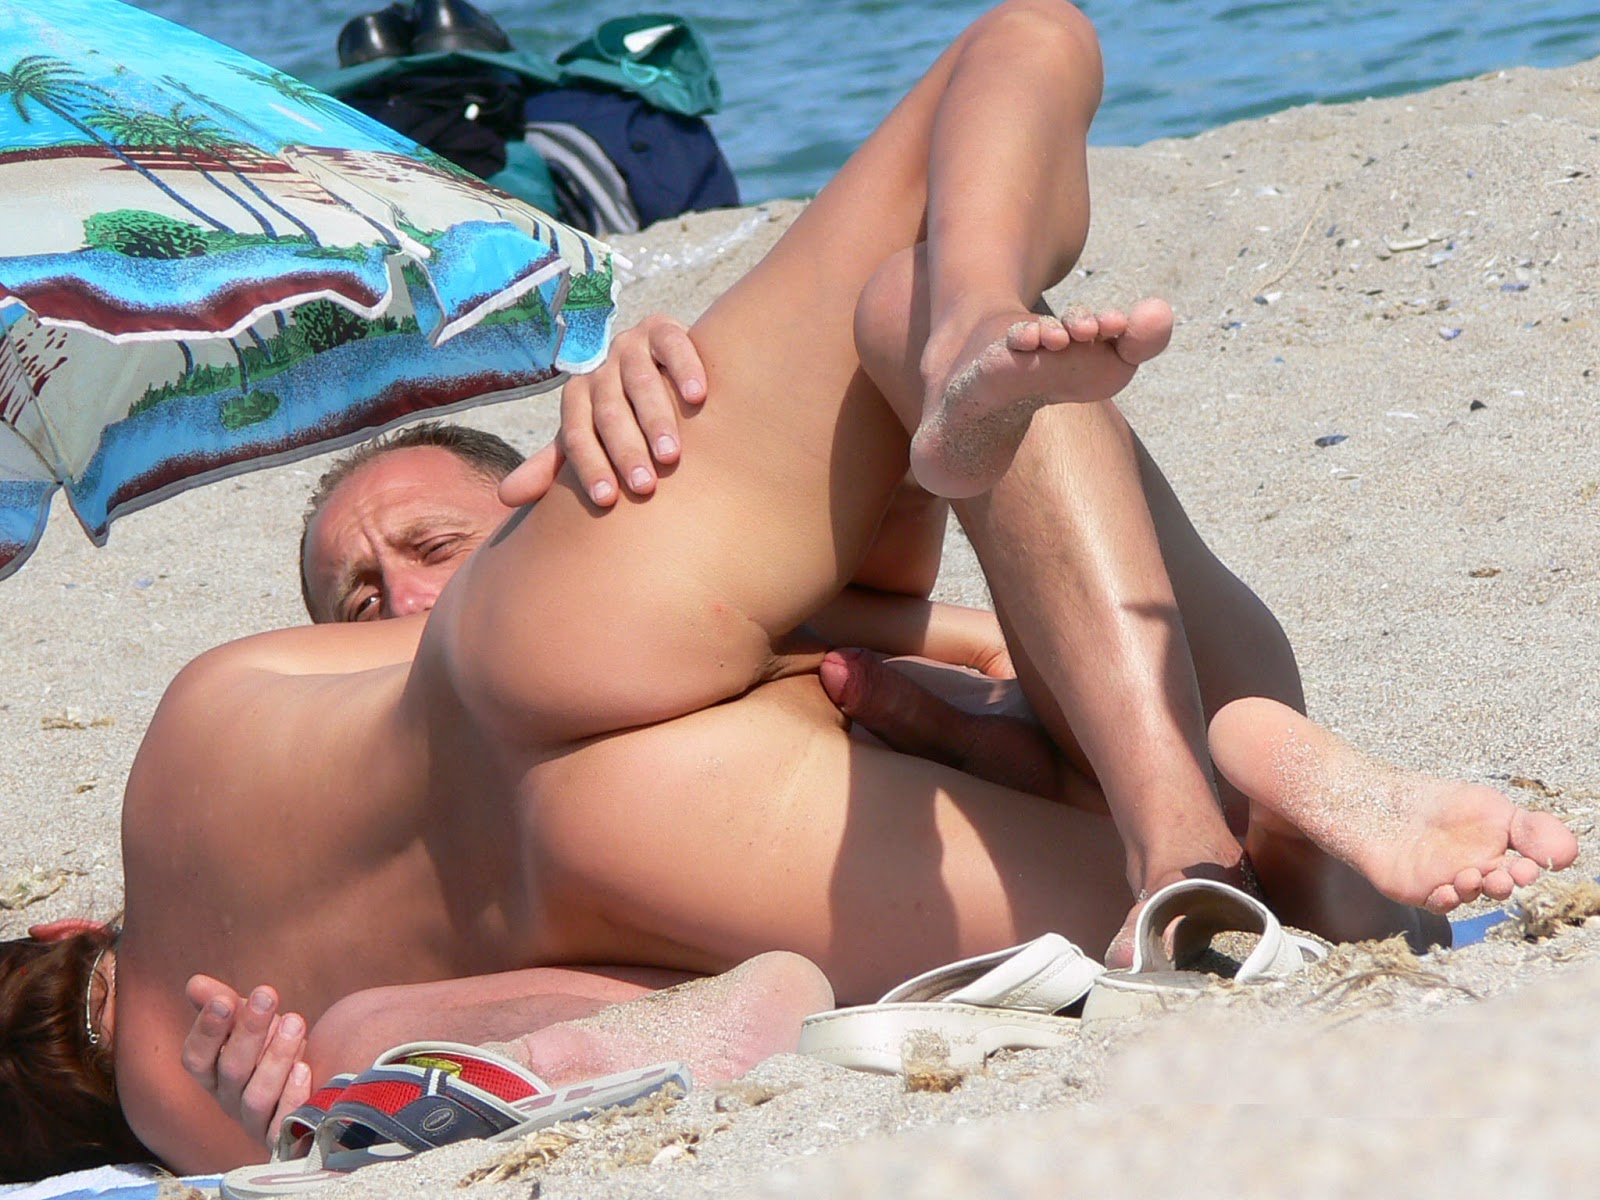 Talk this Voyeur nudist beach accept. opinion